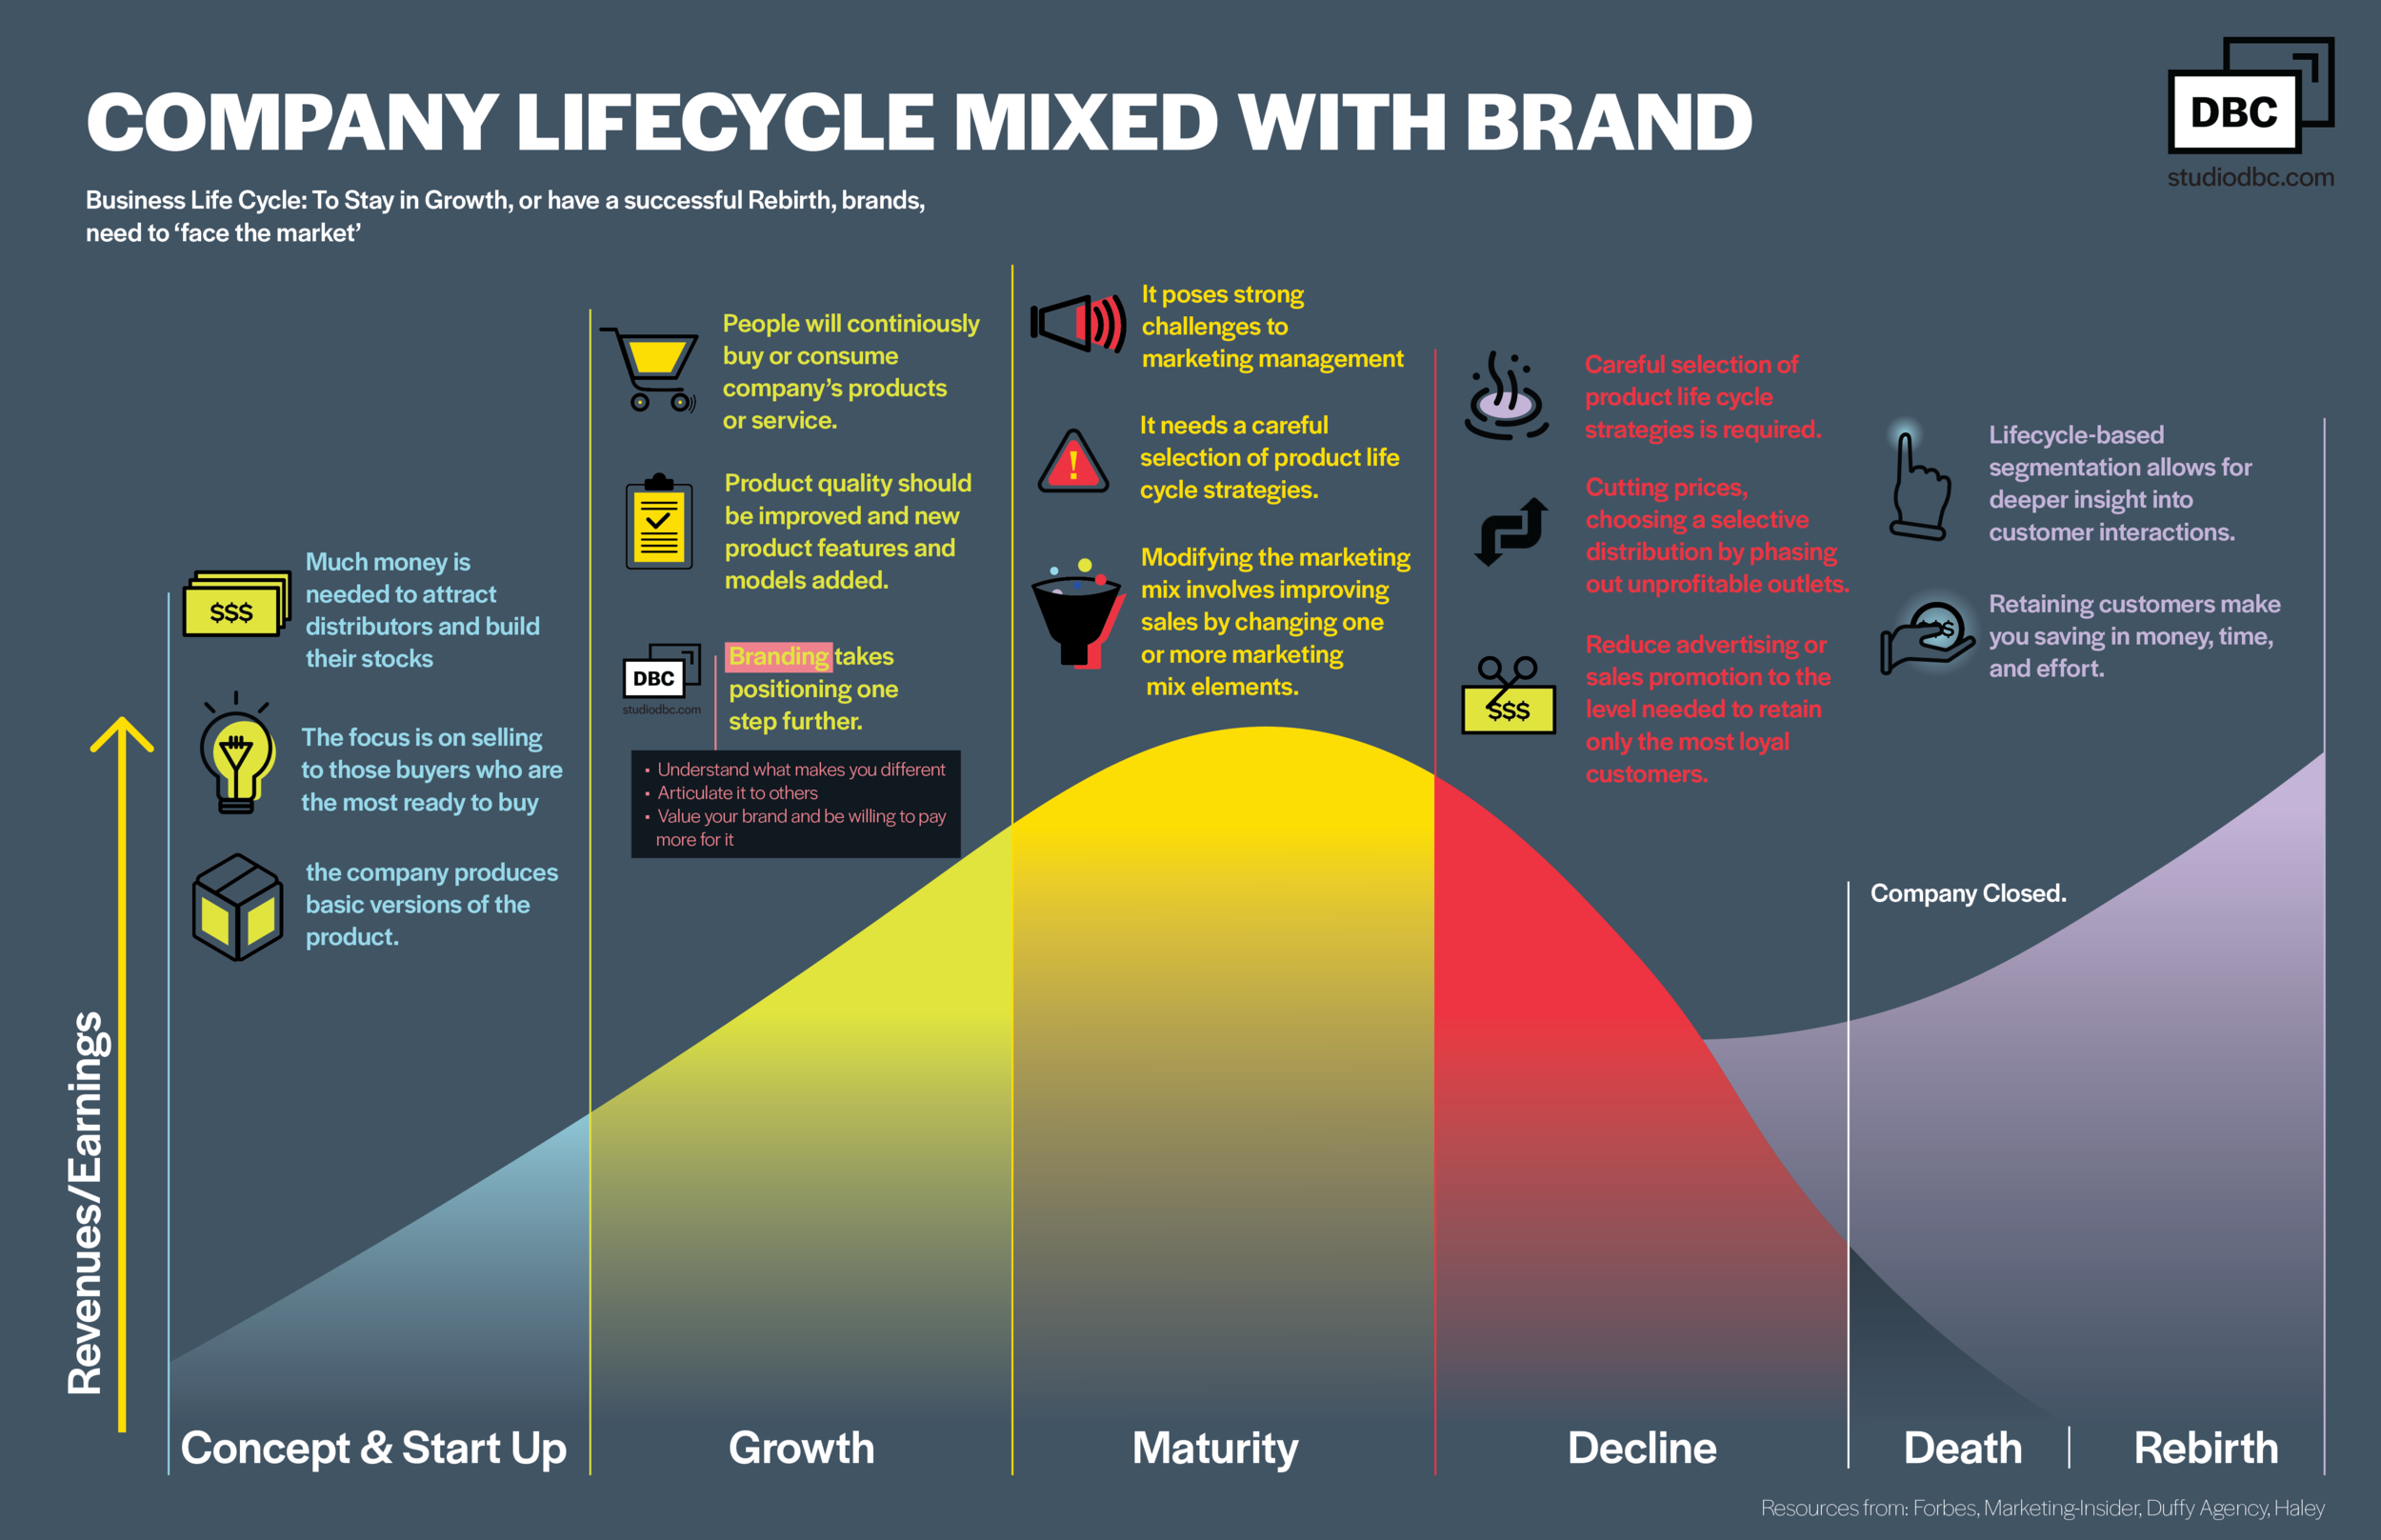 Company lifecycle mixed with brand